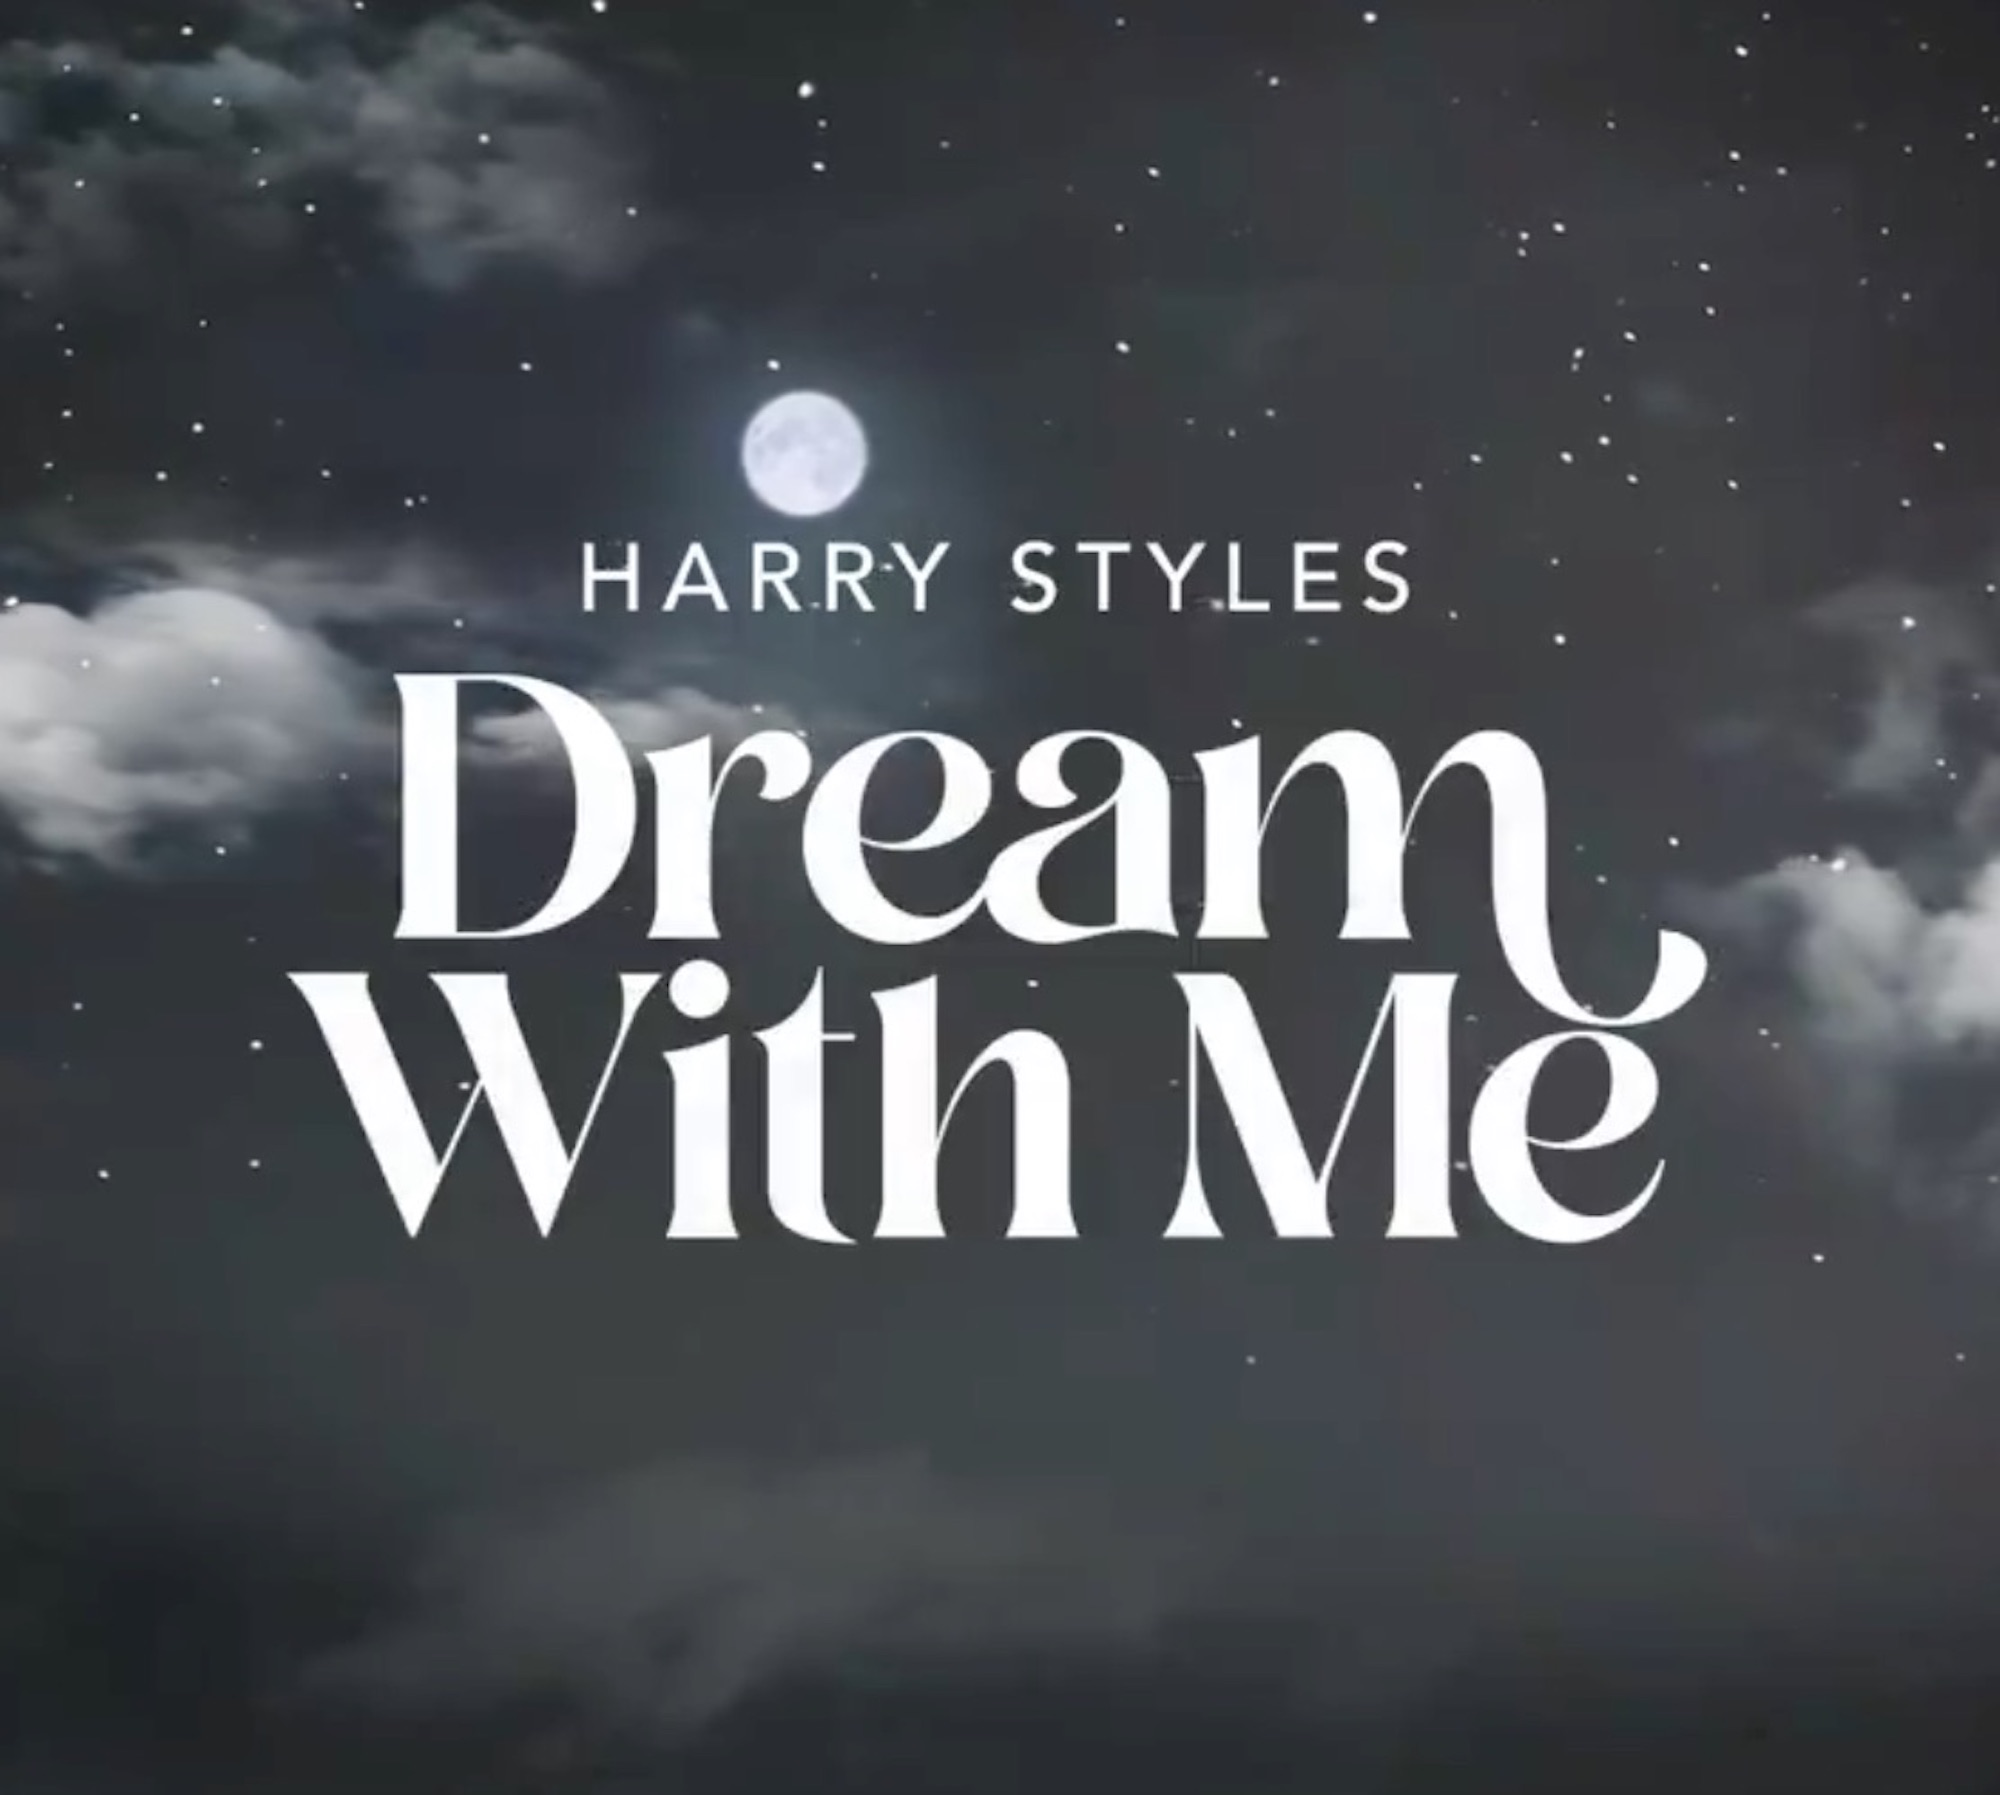 Harry styles teams up with Calm App for Dream With Me